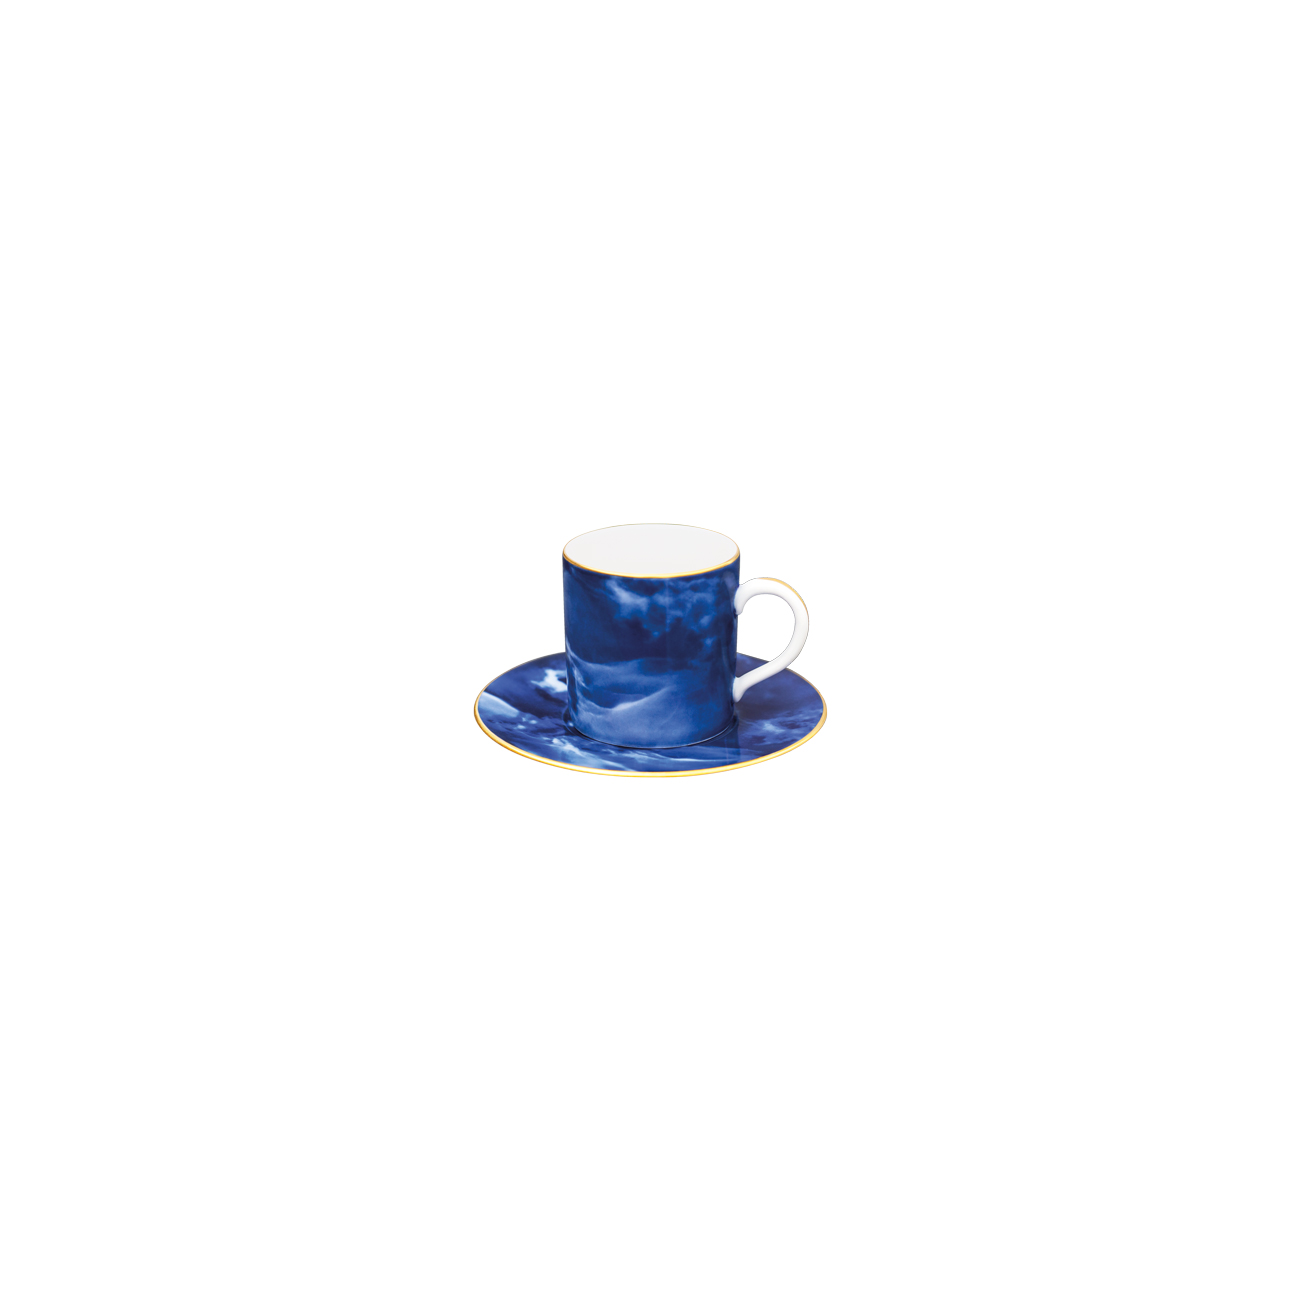 Coffe Cup 9cl Bia + Coffe saucer 11 cm Bia 0